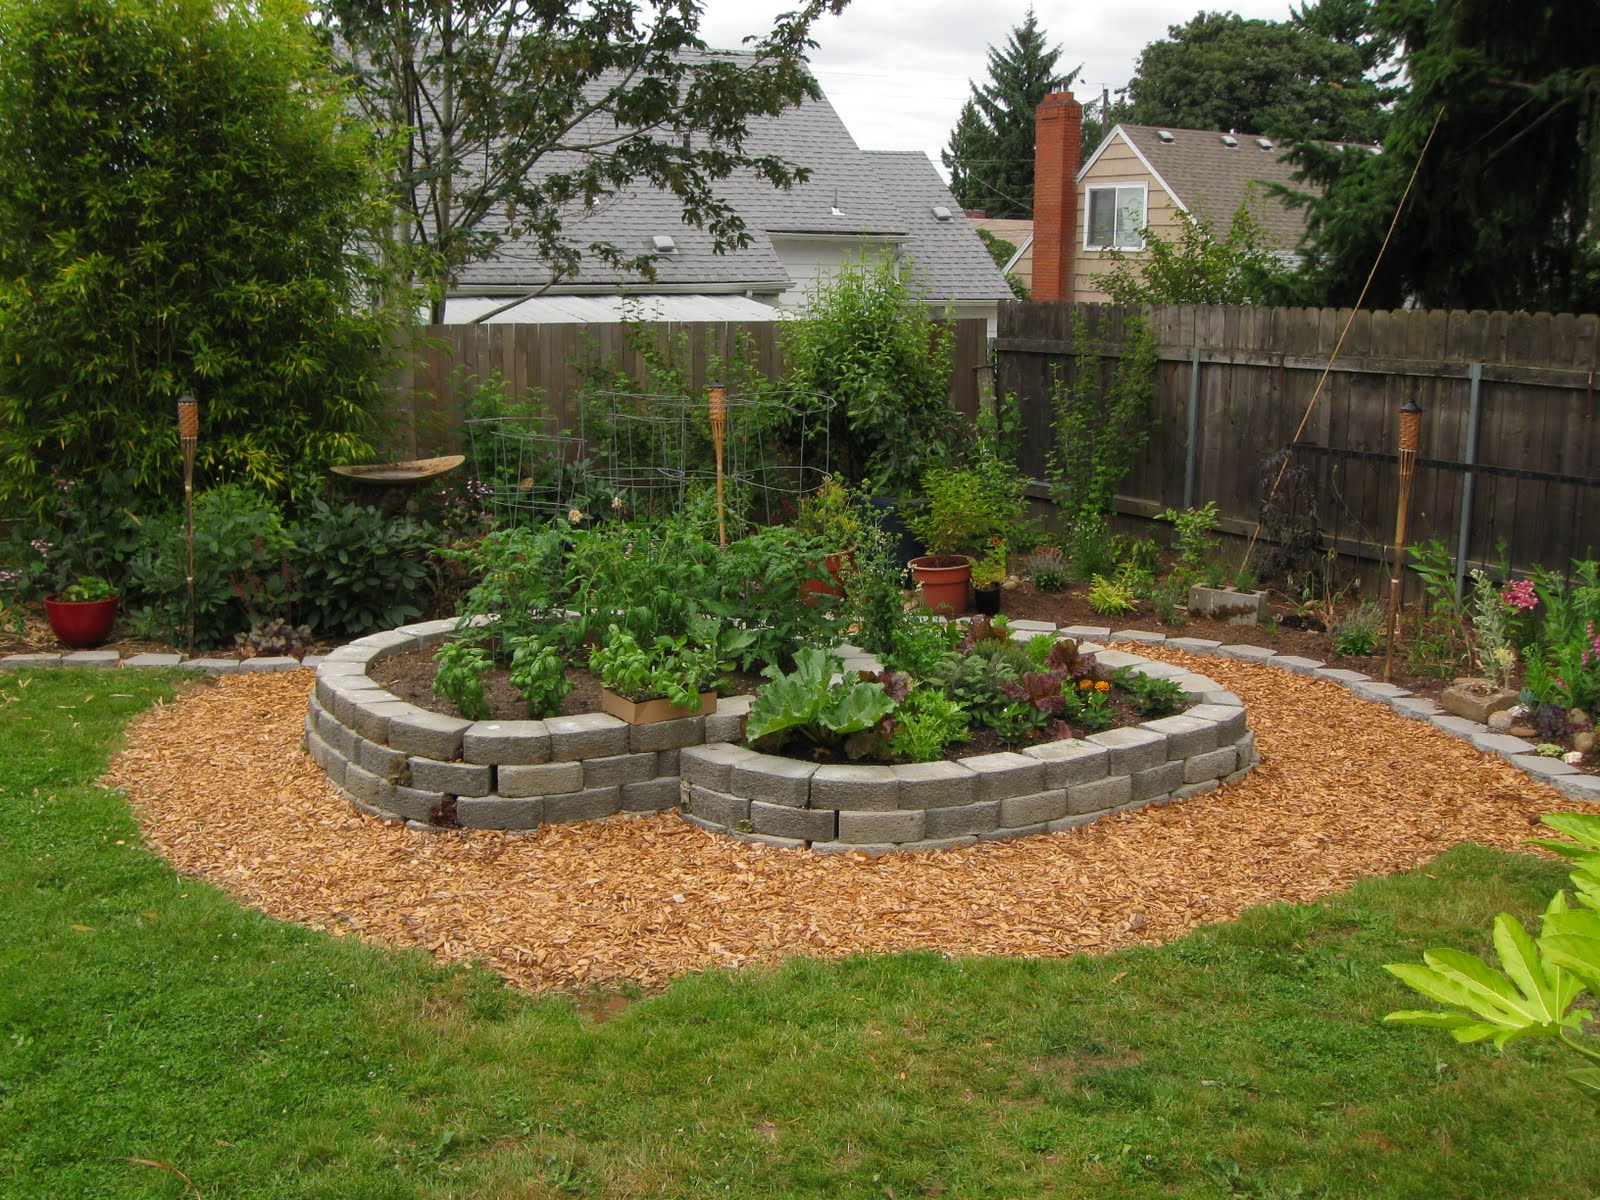 Simple landscaping ideas with low maintenance design and for Simple garden landscape ideas